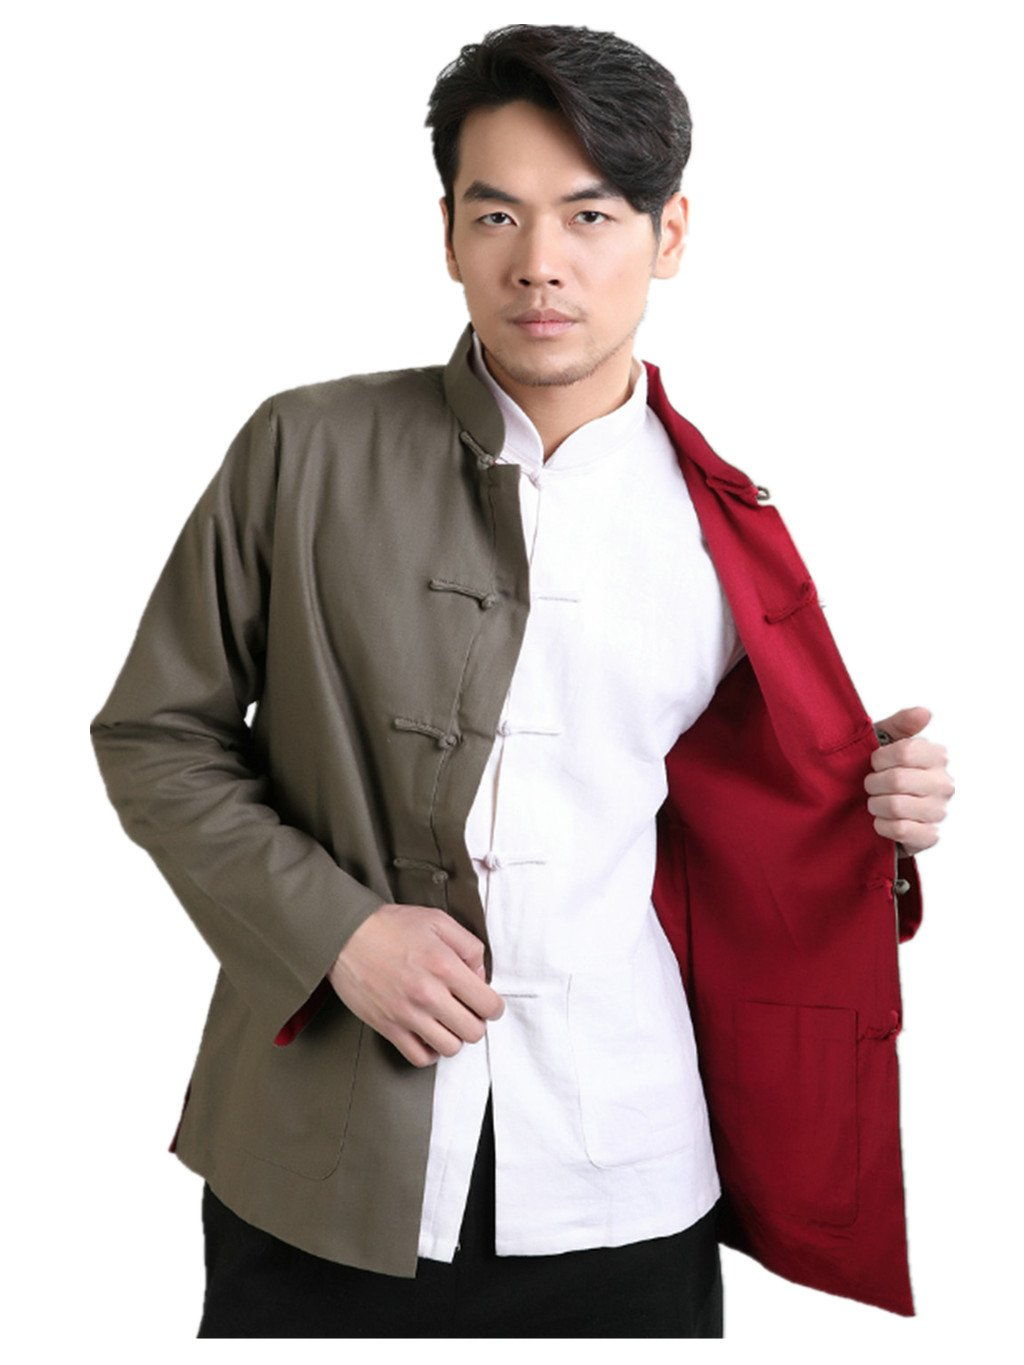 Cotton-flax Tang Suits Double-sided Wear Retro Jackets mens shirts Business Jackets Full Dress by Double-sided Wear Tang Suit